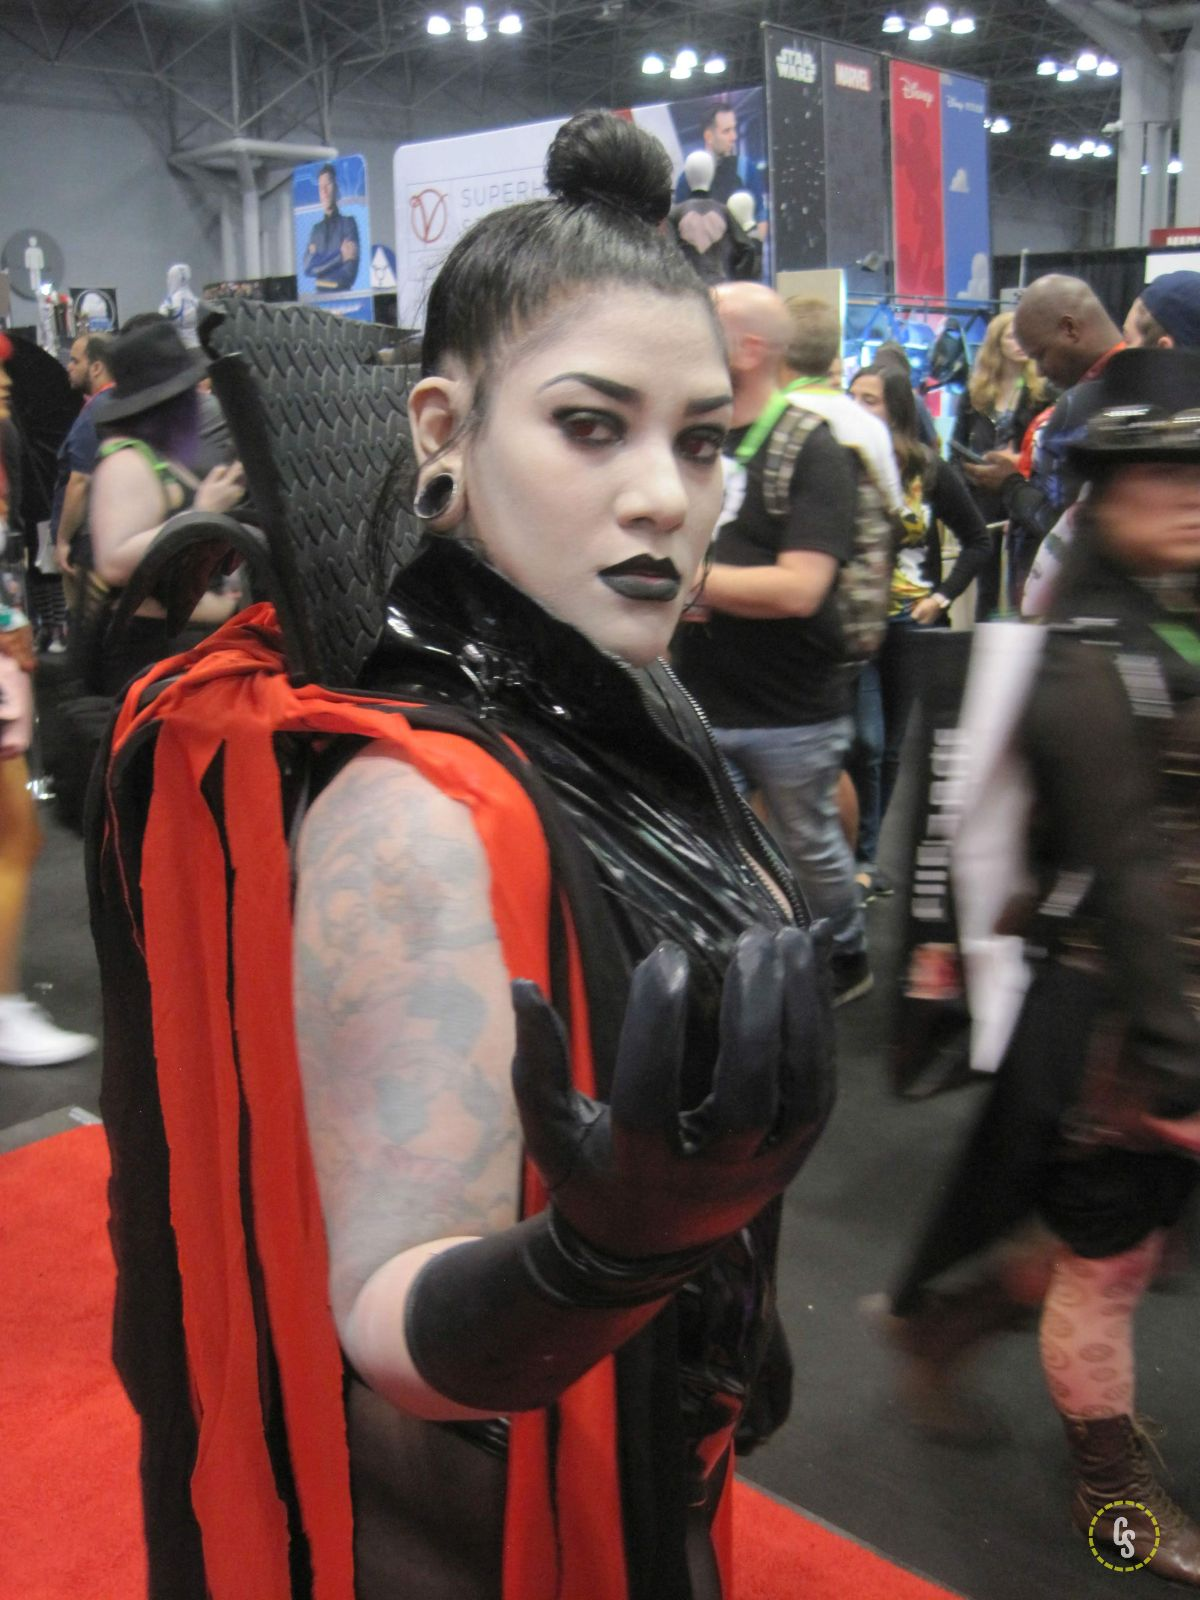 nycc183_040